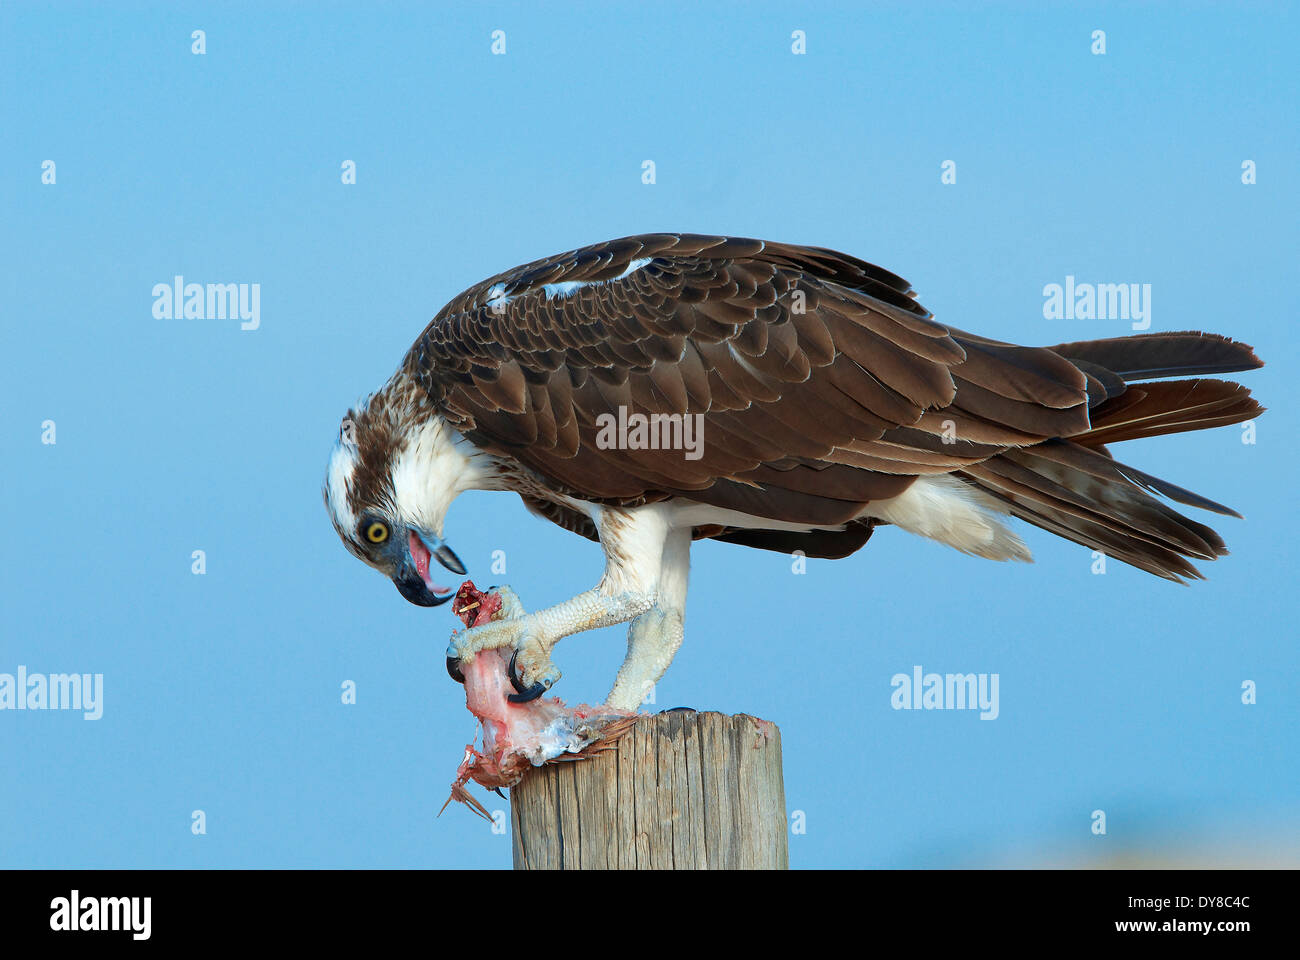 Eagle, Australia, cape Leveque, fish, animal, birds, Western Australia, prey, eat - Stock Image